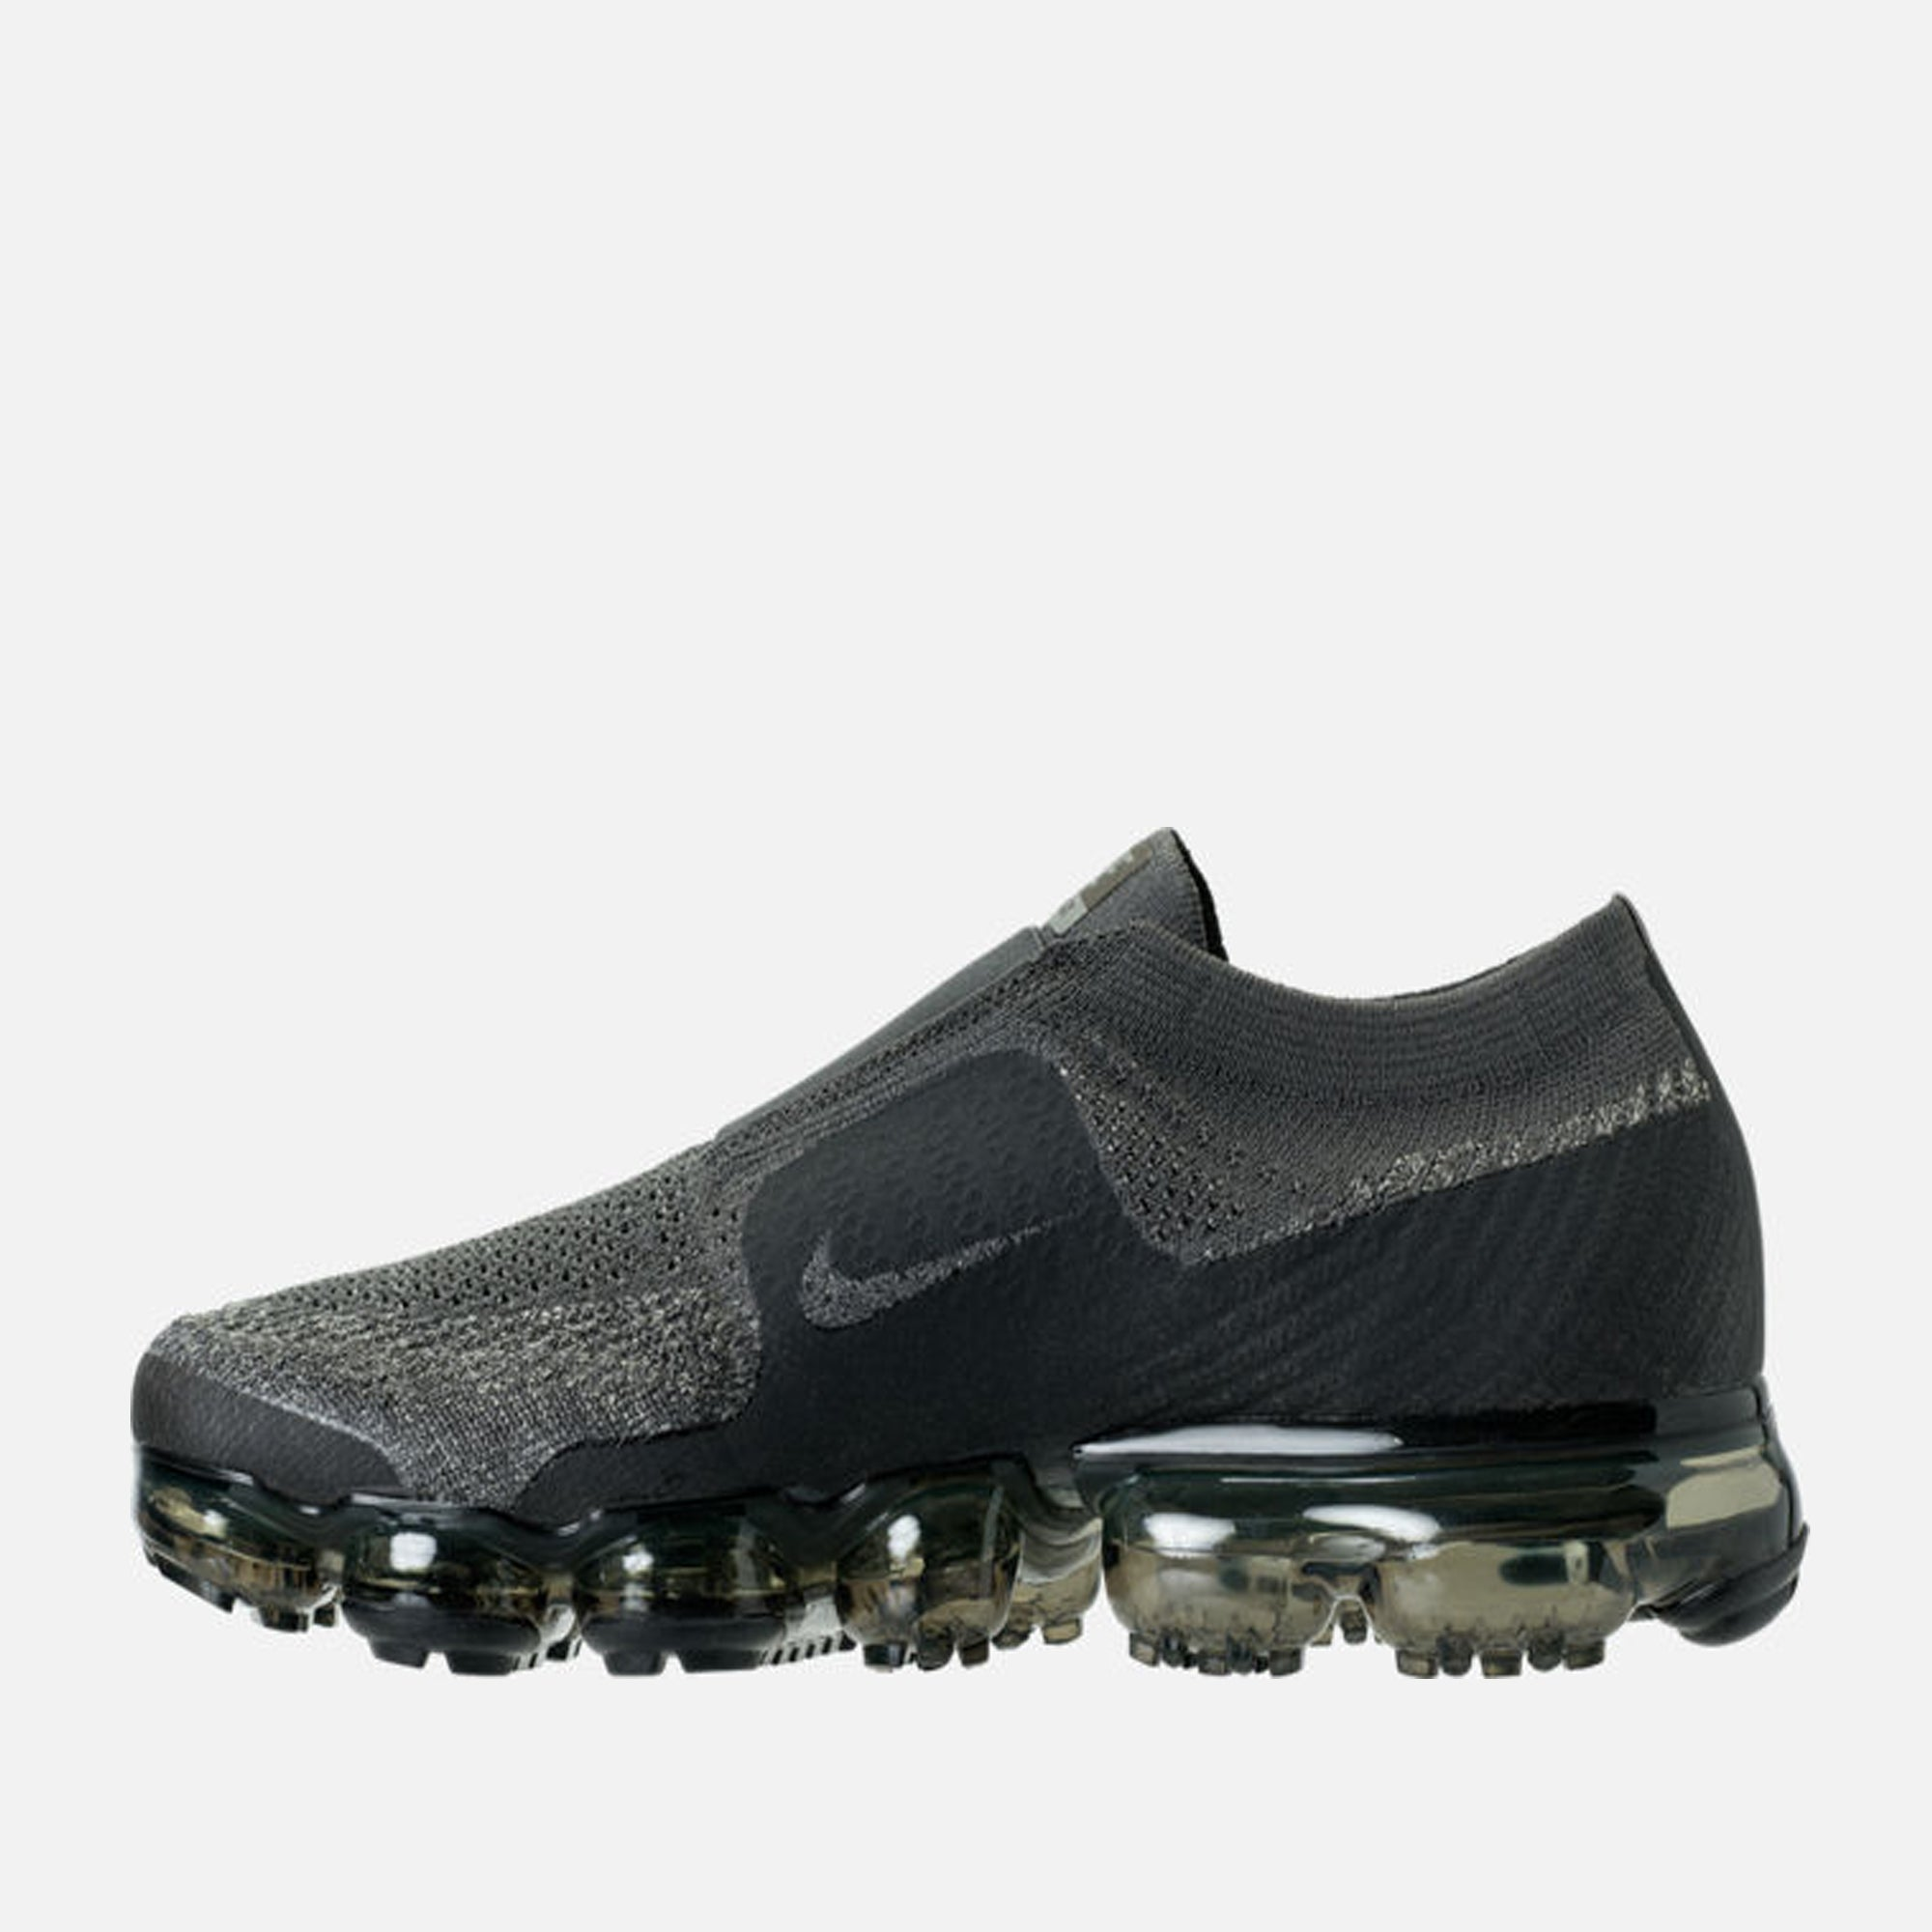 e4fedb0dfccd0 Men s Nike AIR VAPORMAX Flykint MOC Running Shoes Midnight Fog Dark Stucco  - PZOZO